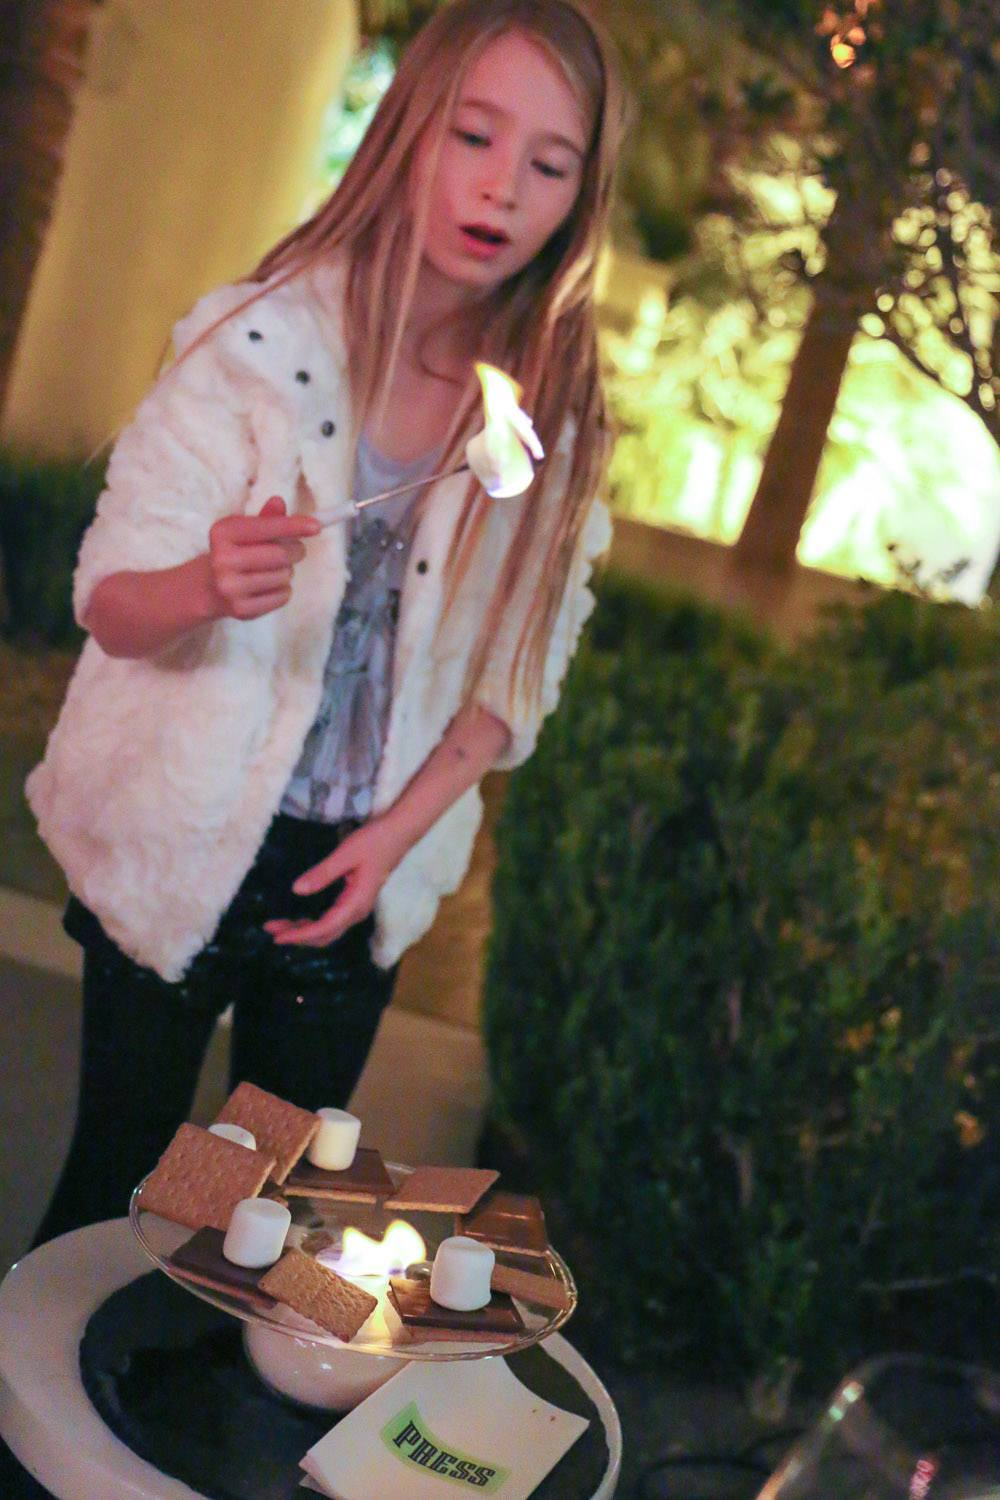 Roast s'mores on the patio at PRESS